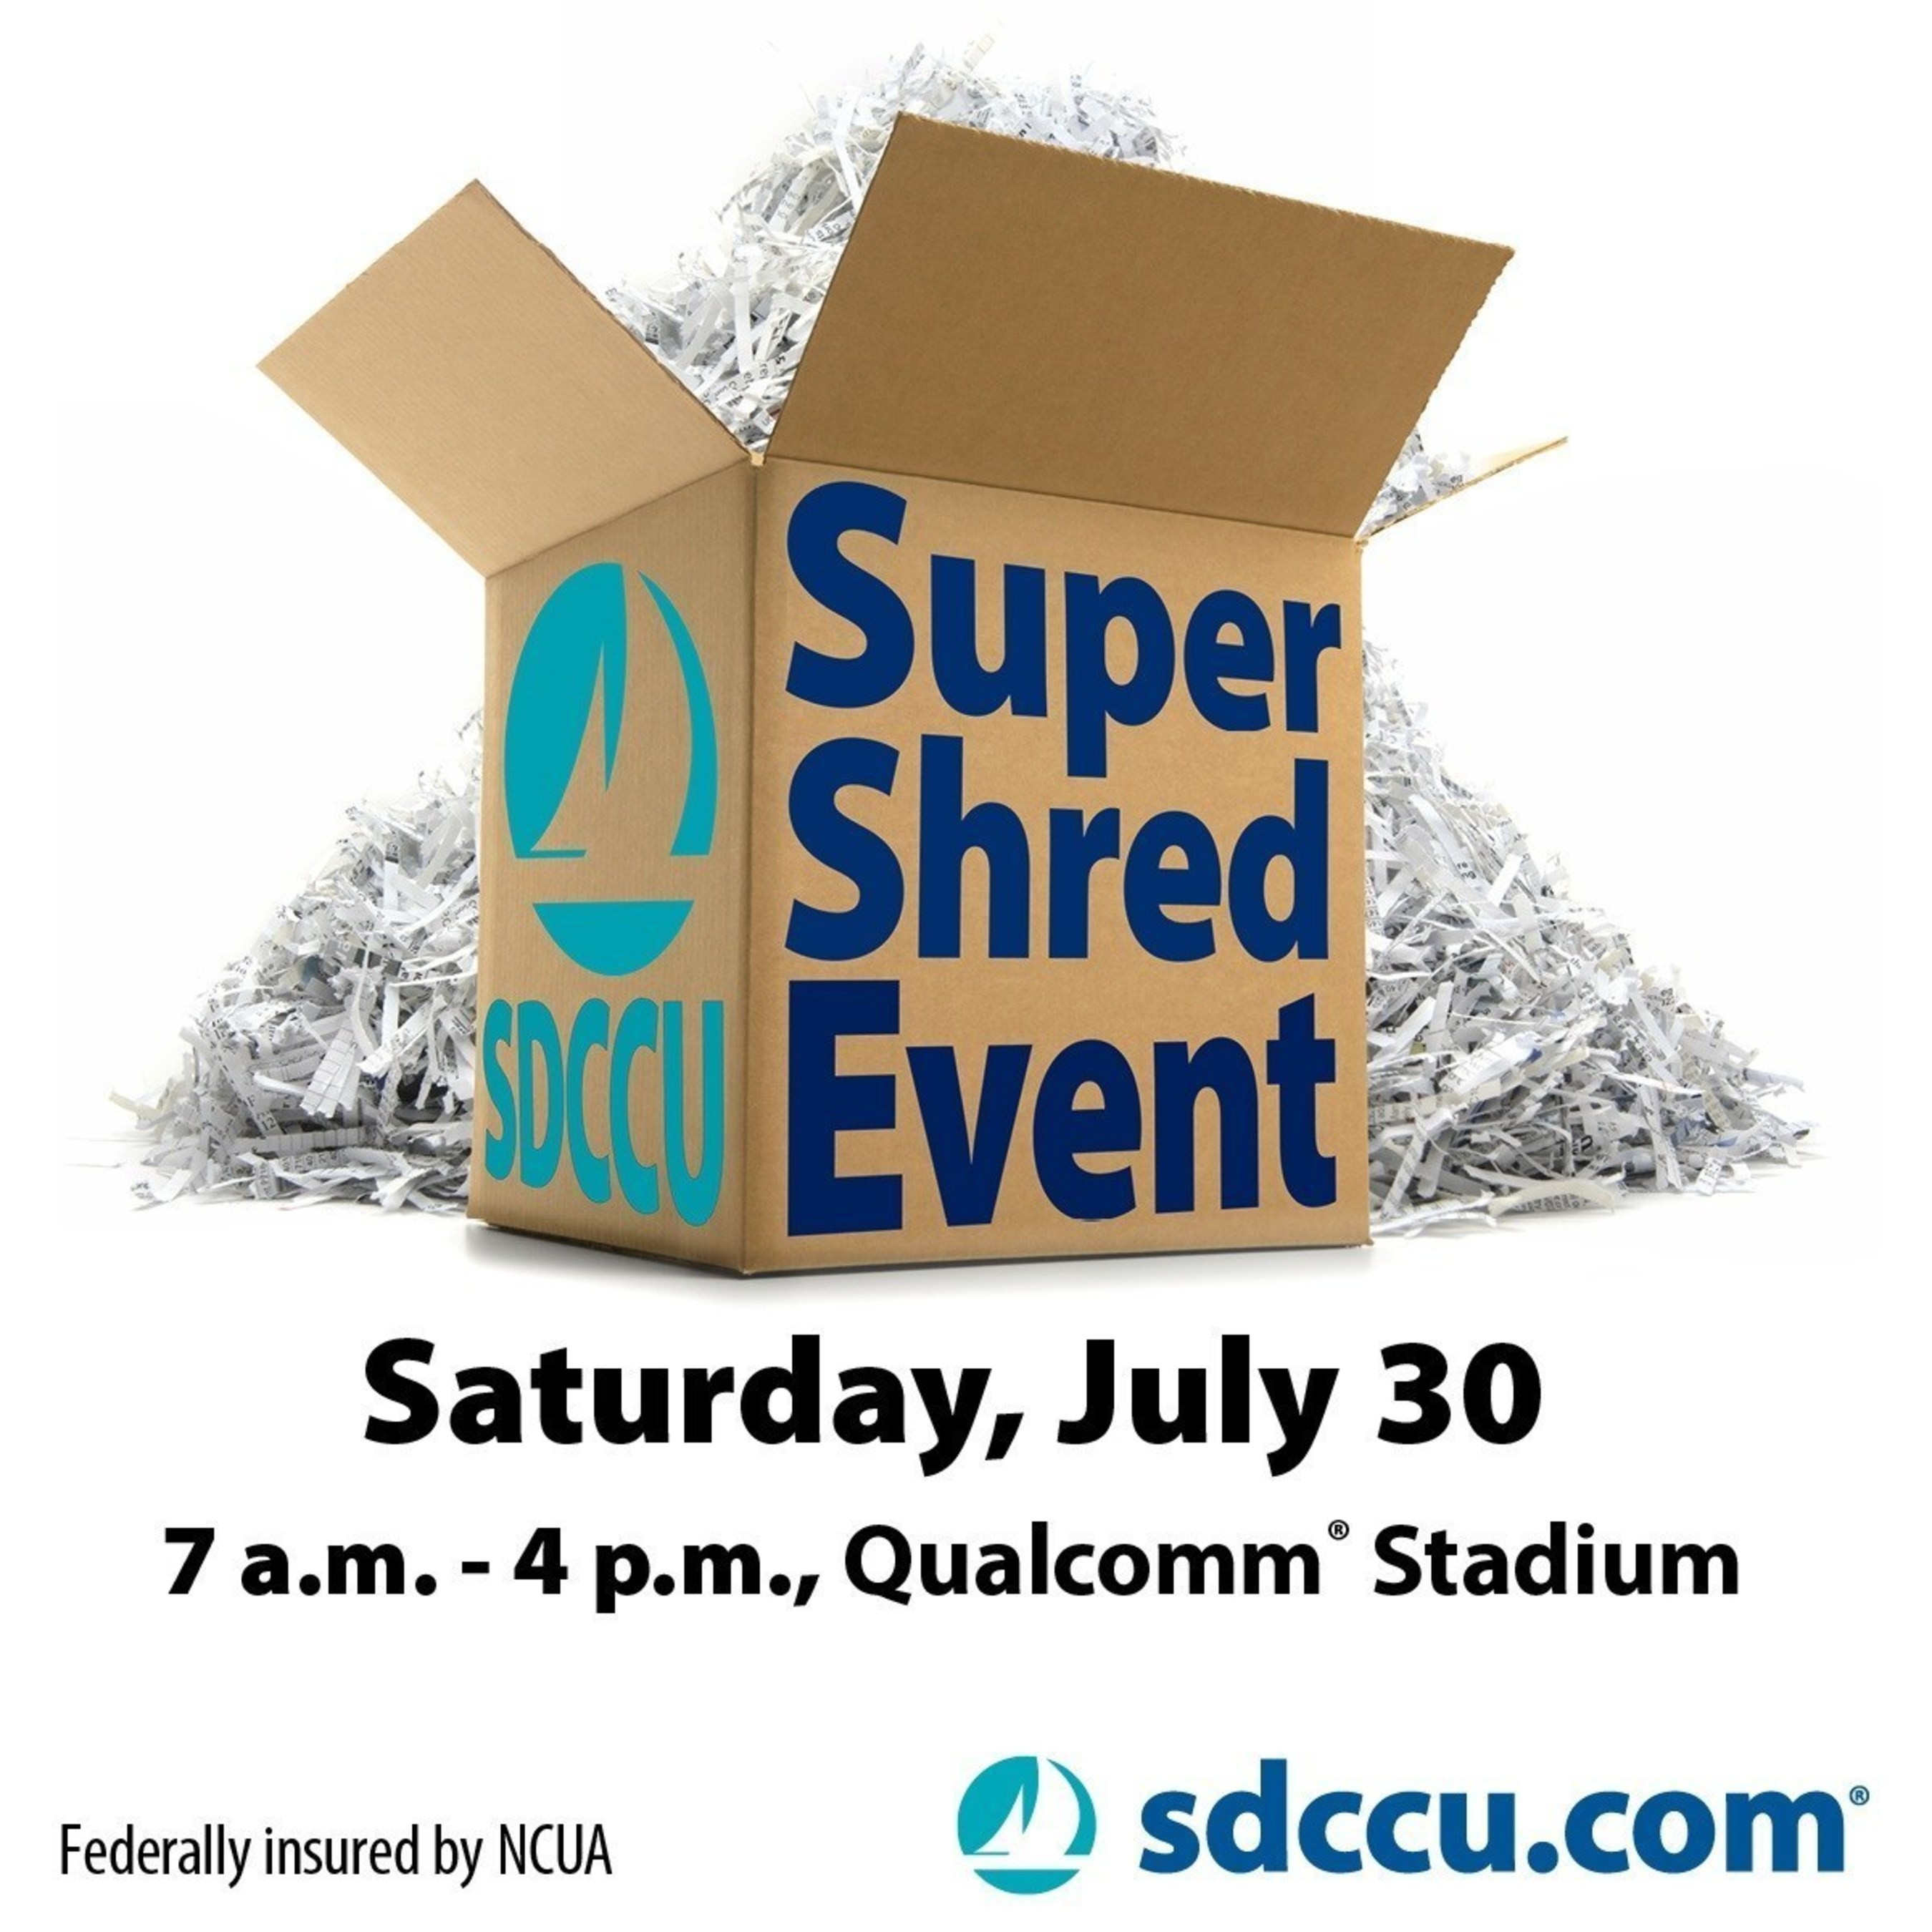 The SDCCU Super Shred Event is Saturday, July 30 from 7 a.m. to 4 p.m. at Qualcomm(R) Stadium. It's going to be the biggest in history - SDCCU is planning to shred the Guinness World Record(R) for most paper collected in 24 hours at a single location. The public is invited to bring all of their old documents containing personal and confidential information to be shred at no charge.